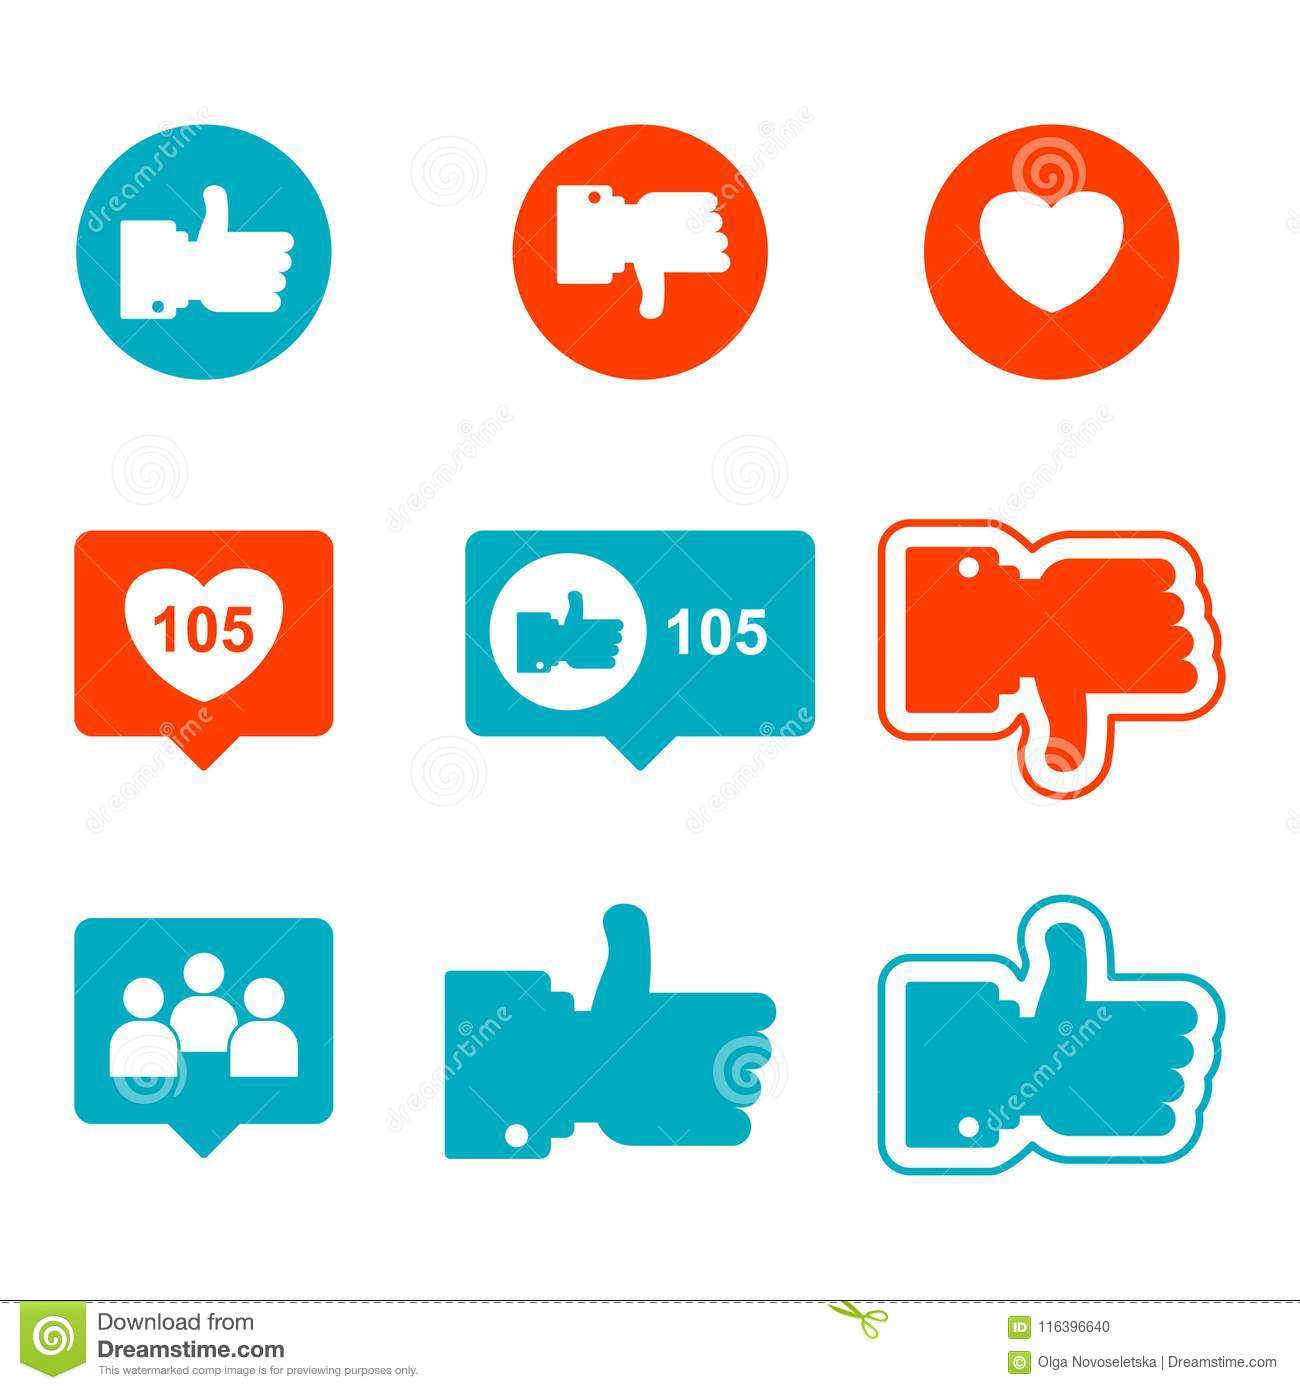 Thumbs Up Vector Sign Stock Vector Illustration Of Communication